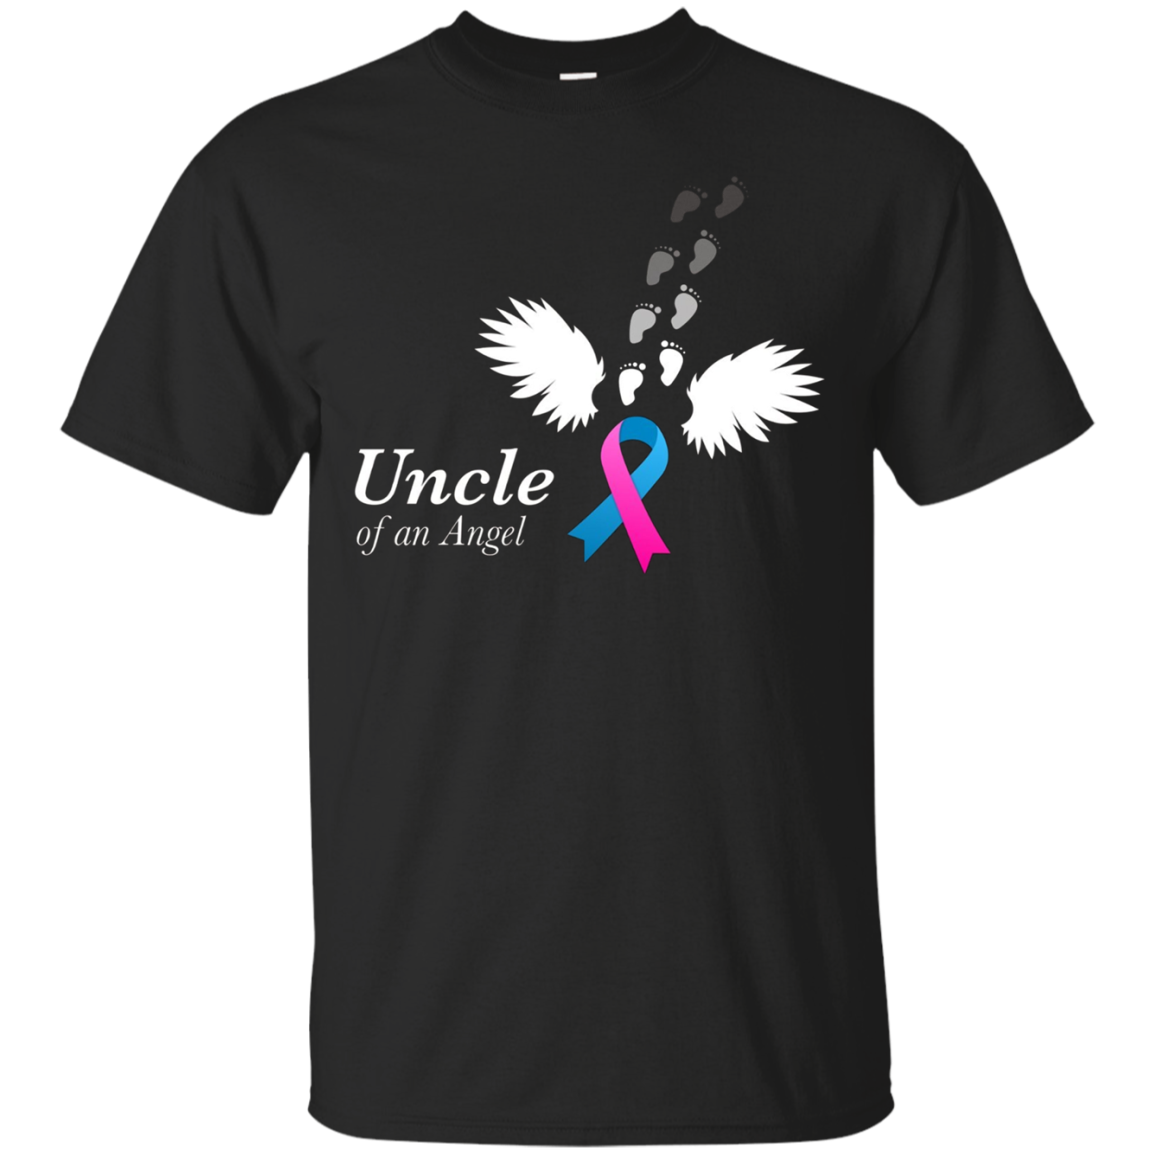 Angel Uncle T-Shirt. Miscarriage Awareness Infant Loss